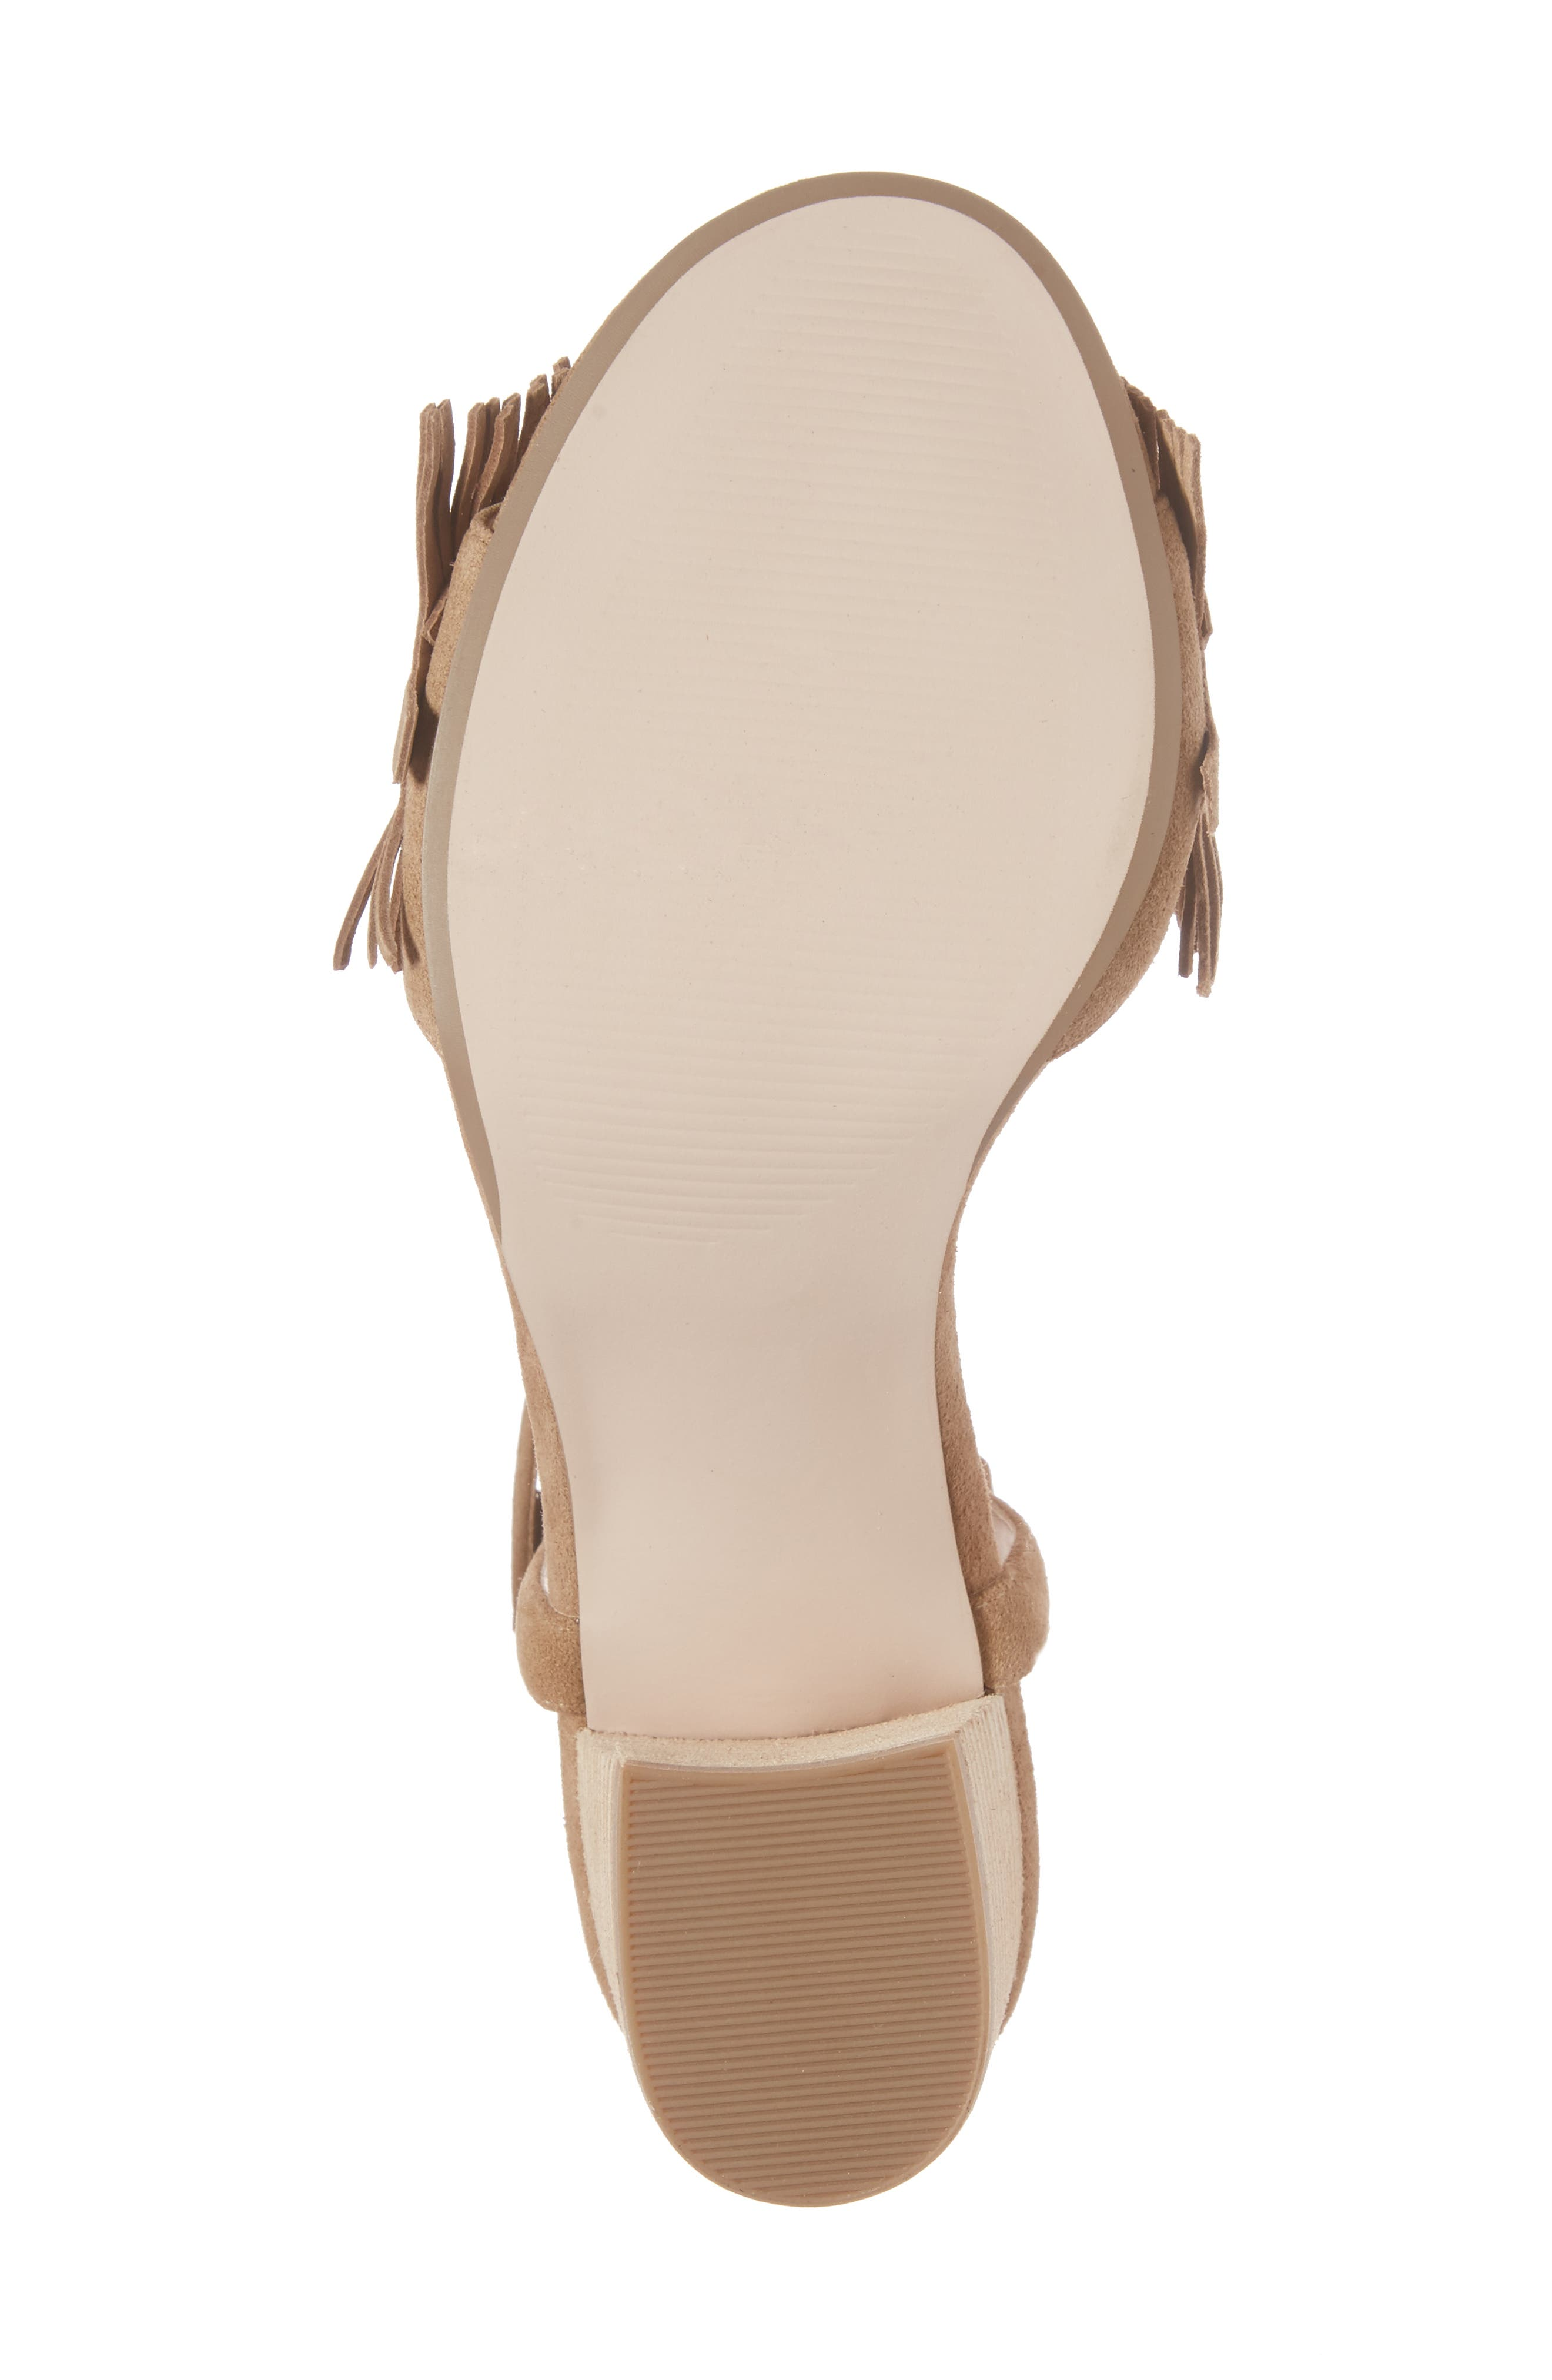 Sepia Fringe Sandal,                             Alternate thumbnail 6, color,                             246